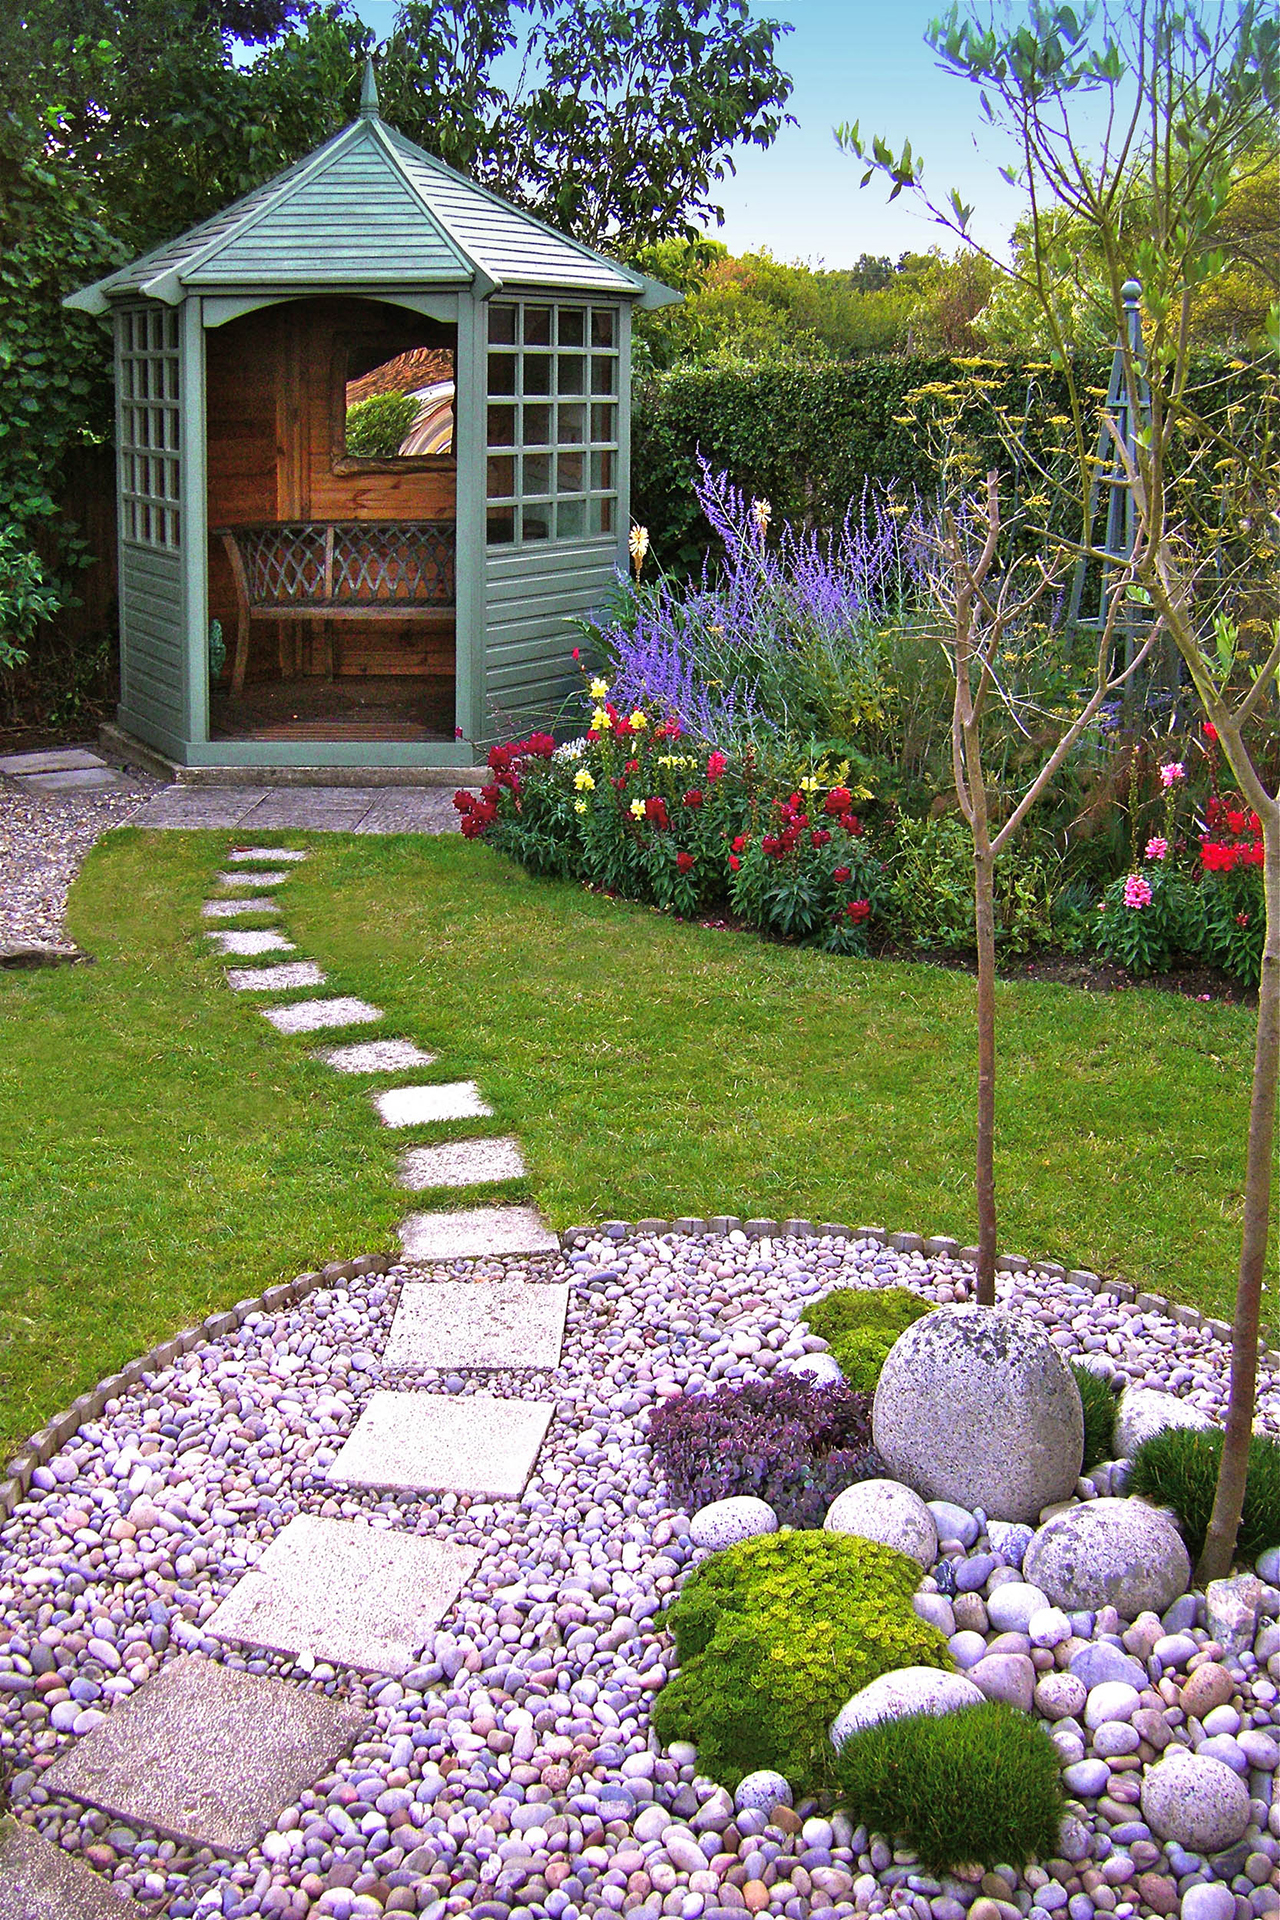 Landscaping Ideas For Backyard 14. A Room of Your Own